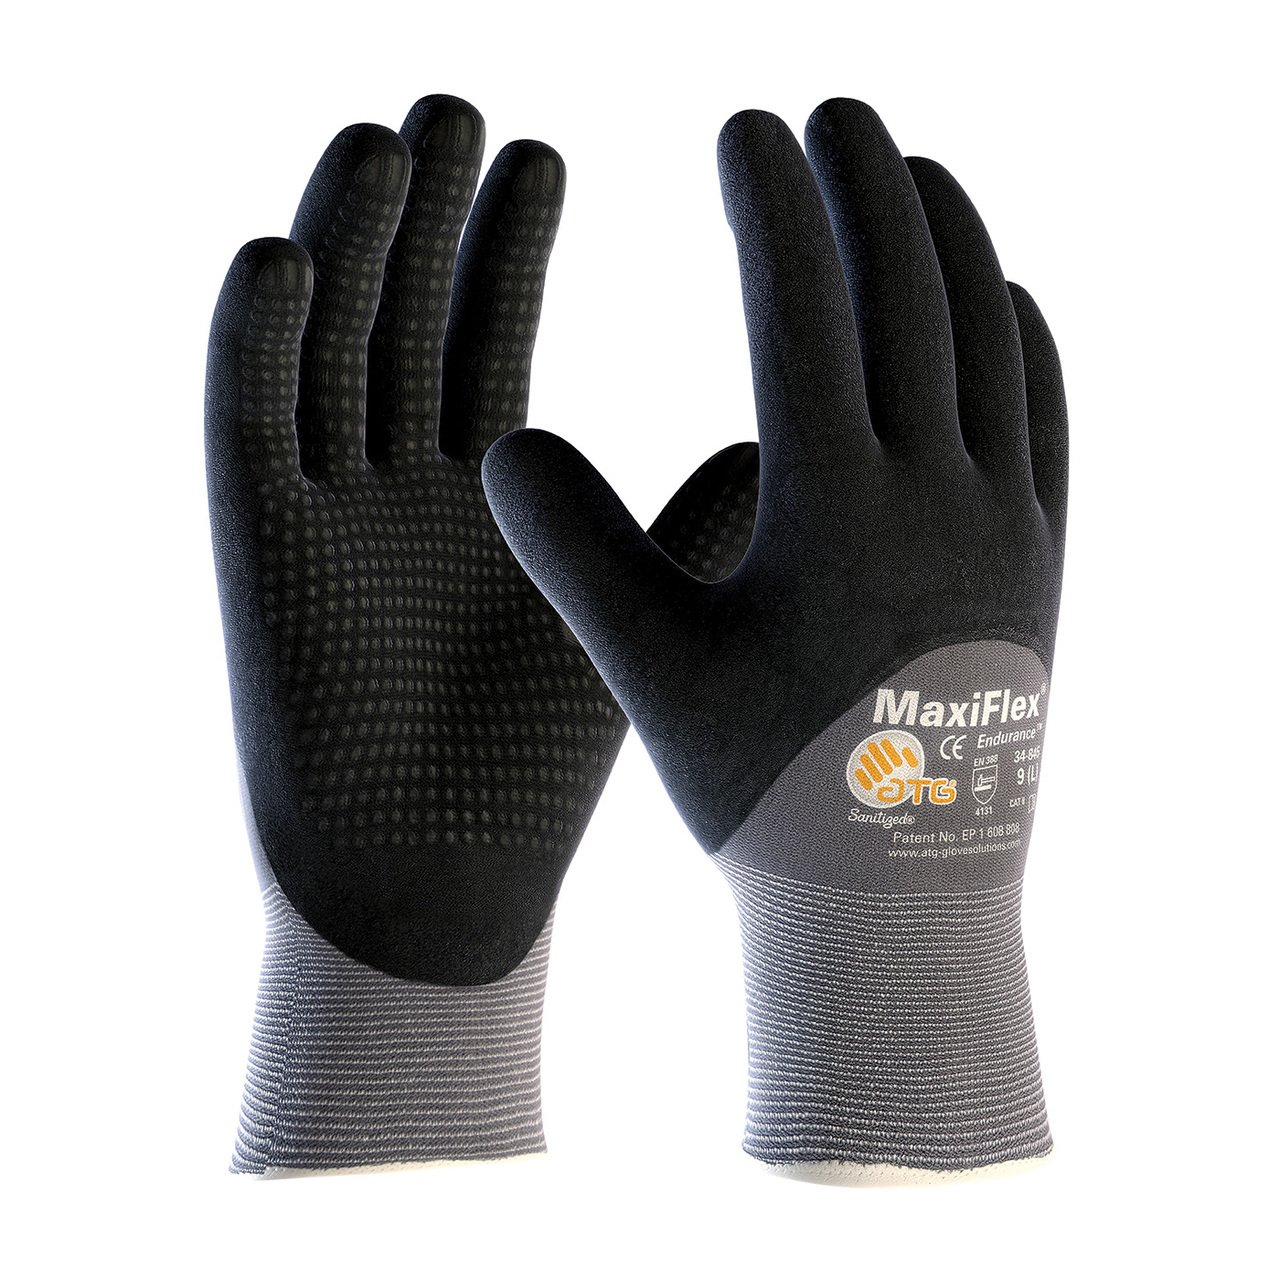 ATG 34-845/XL MaxiFlex Endurance - Nylon, Micro-Foam Nitrile 3/4 Grip Gloves - Black/Gray - X-Large - 12 Pair Per Pack by ATG by ATG (Image #1)